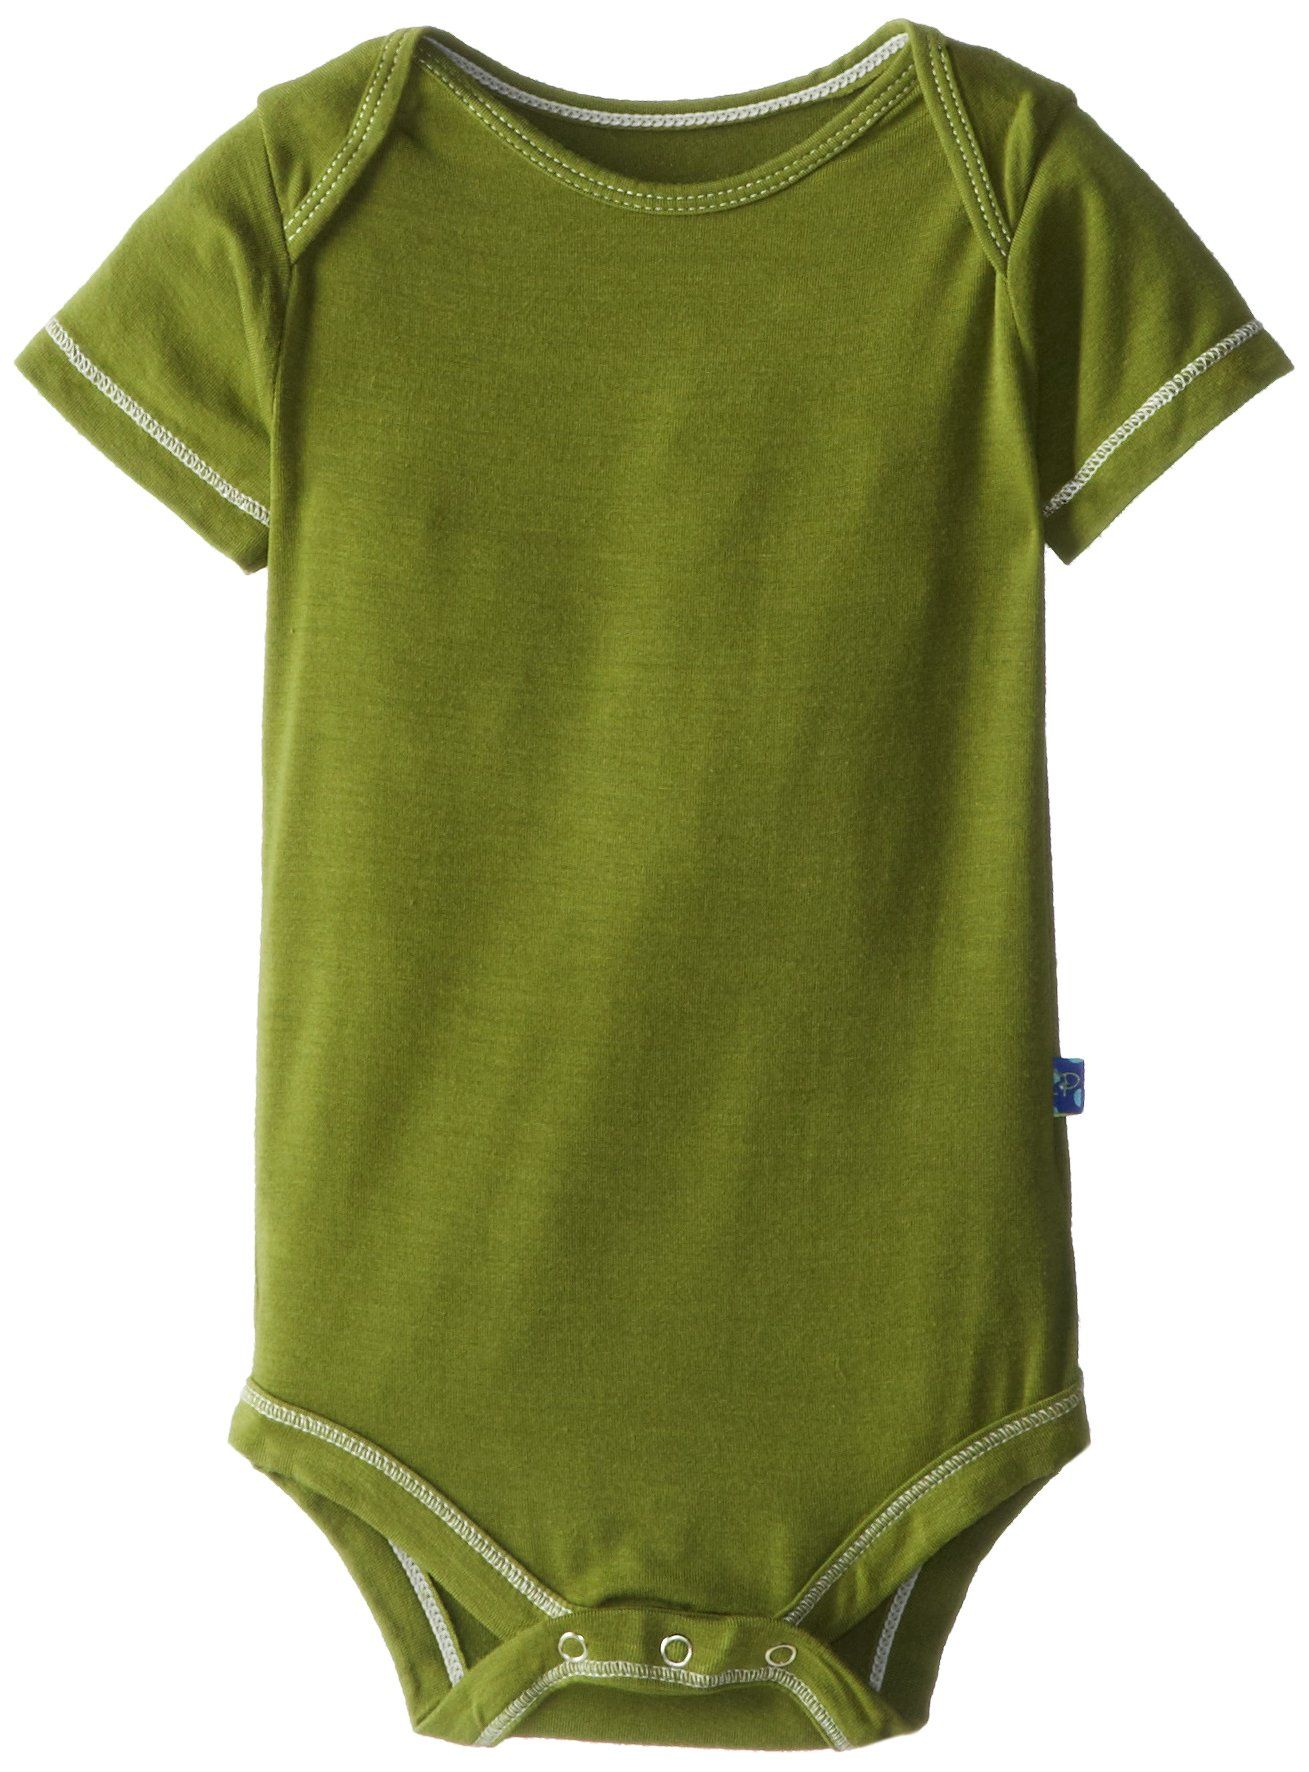 Amazon.com: KicKee Pants Short Sleeved One-Piece, Bark: Infant And Toddler One Pieces: Clothing